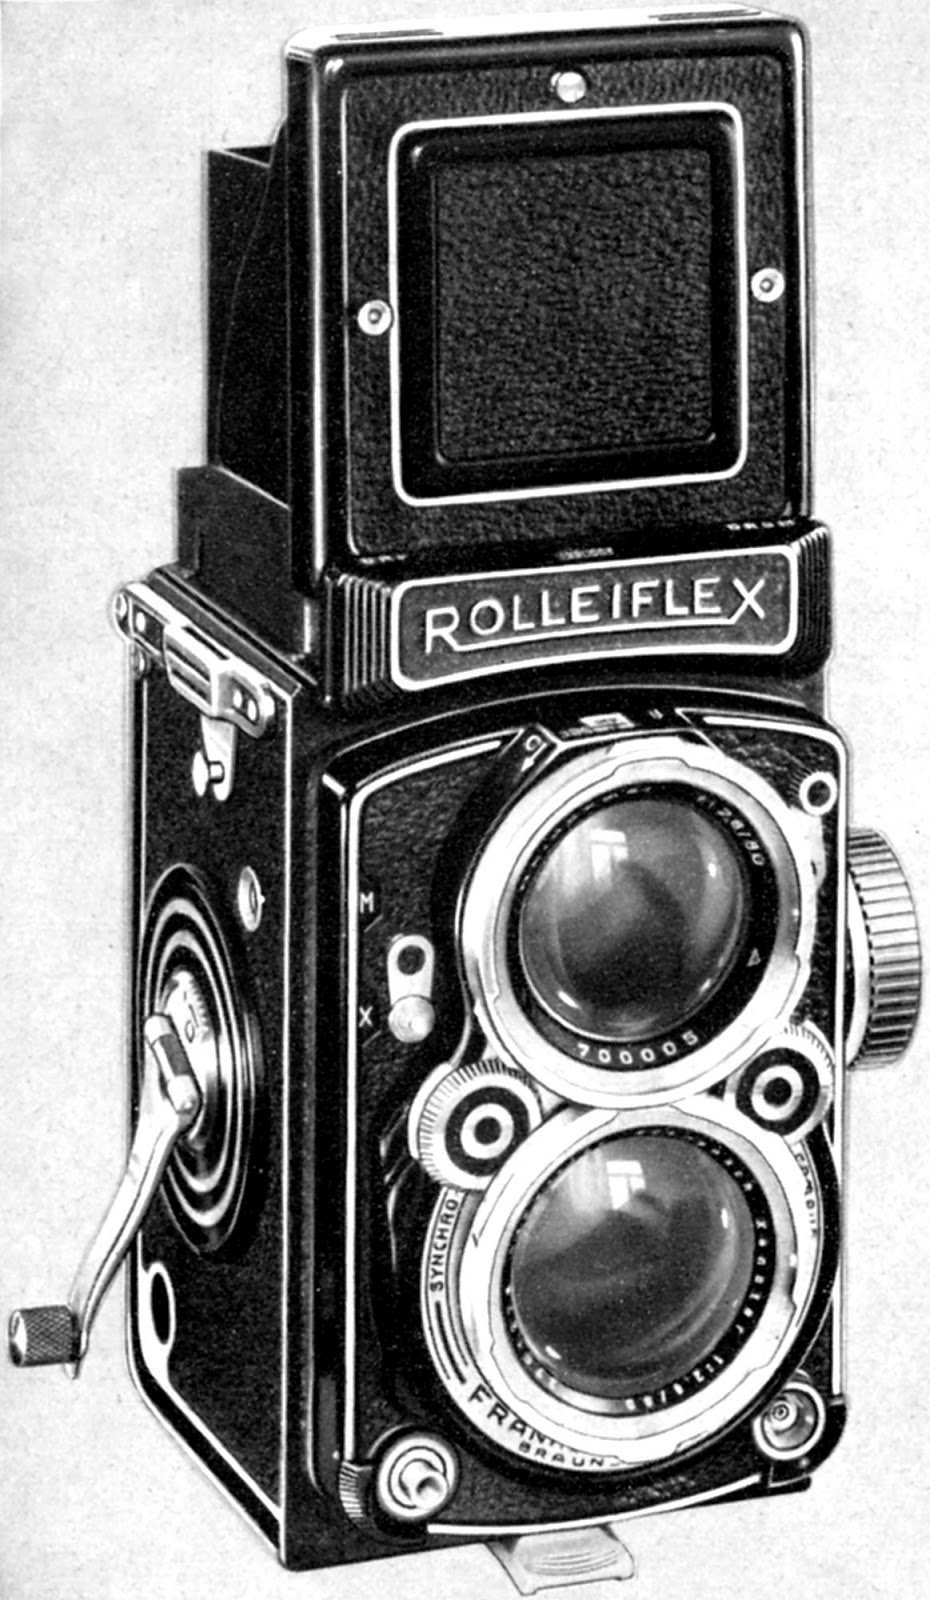 Photography clipart vintage STaMPS**: STaMPS**: Printable DiGiTaL FREE